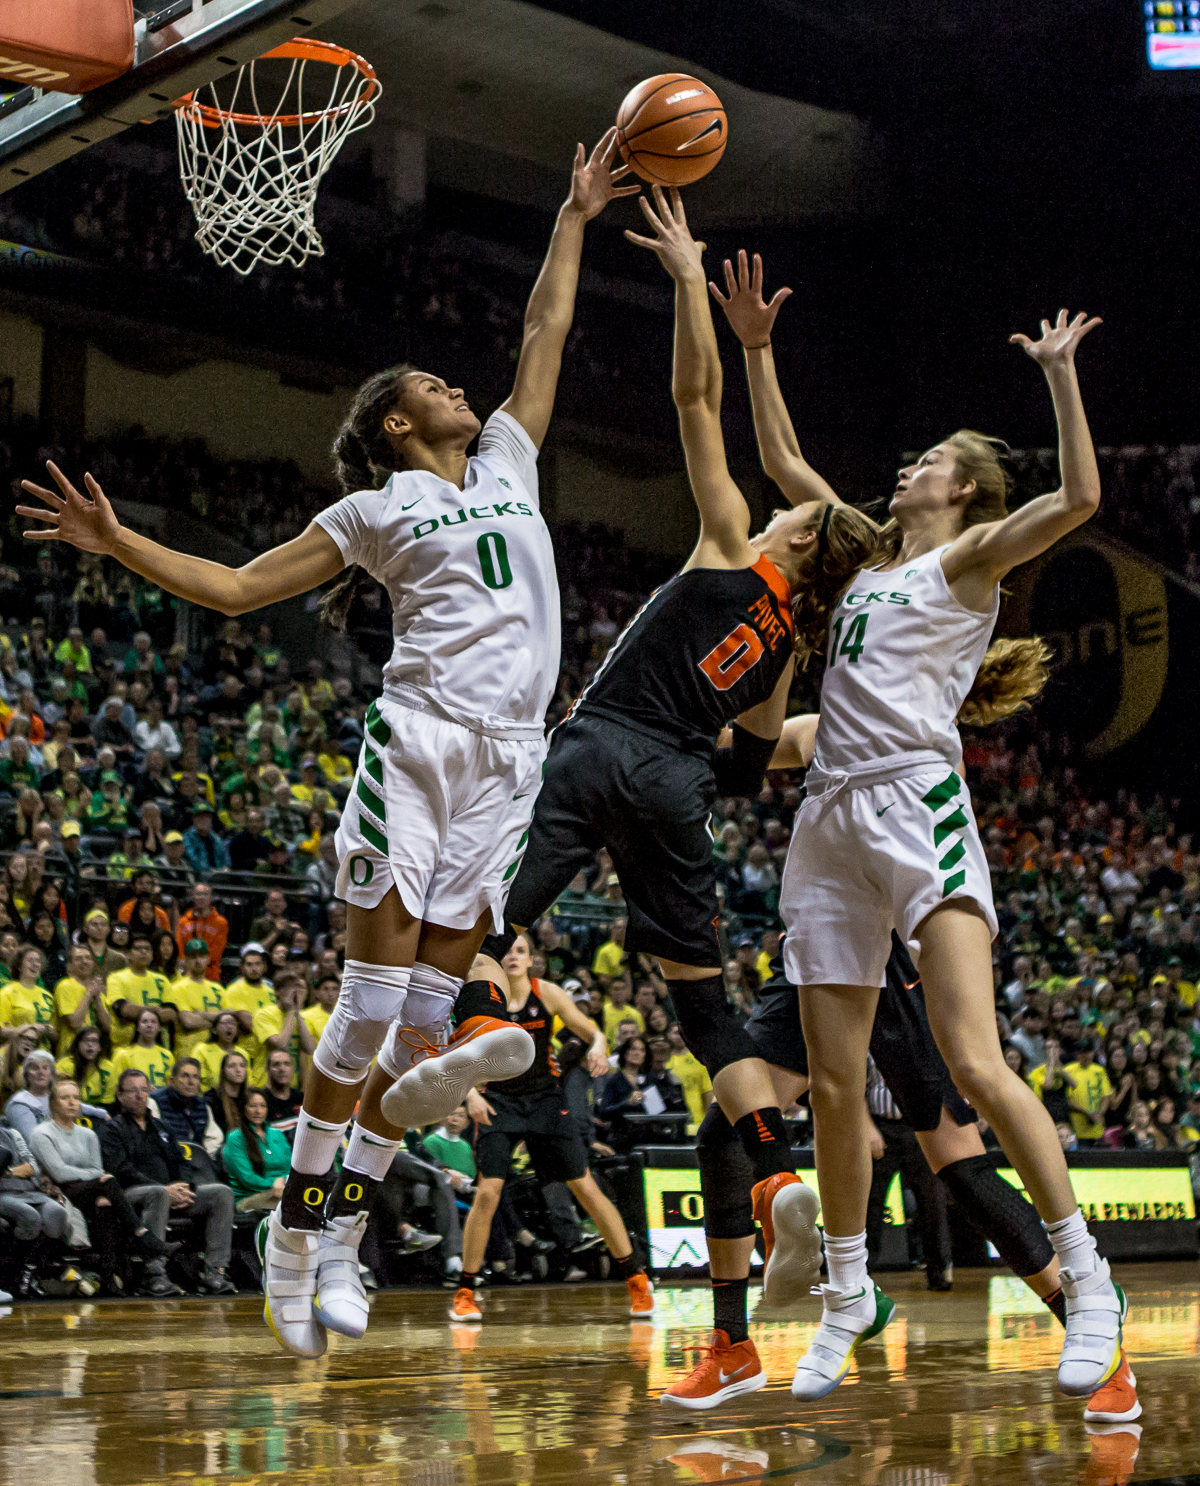 Oregon forward Satou Sabally (#0) blocks an attempted shot by Oregon State guard Mikayla Pivec (#0). The Oregon Ducks defeated the Oregon State Beavers 75-63 on Sunday afternoon in front of a crowd of 7,249 at Matthew Knight Arena. The Ducks and Beavers split the two game Civil War with the Beavers defeating the Ducks on Friday night in Corvallis. The Ducks had four players in double digits: Satou Sabally with 21 points, Maite Cazorla with 16, Sabrina Ionescu with 15, and Mallory McGwire with 14. The Ducks shot 48.4% from the floor compared to the Beavers 37.3%. The Ducks are now 7-1 in conference play. Photo by Ben Lonergan, Oregon News Lab